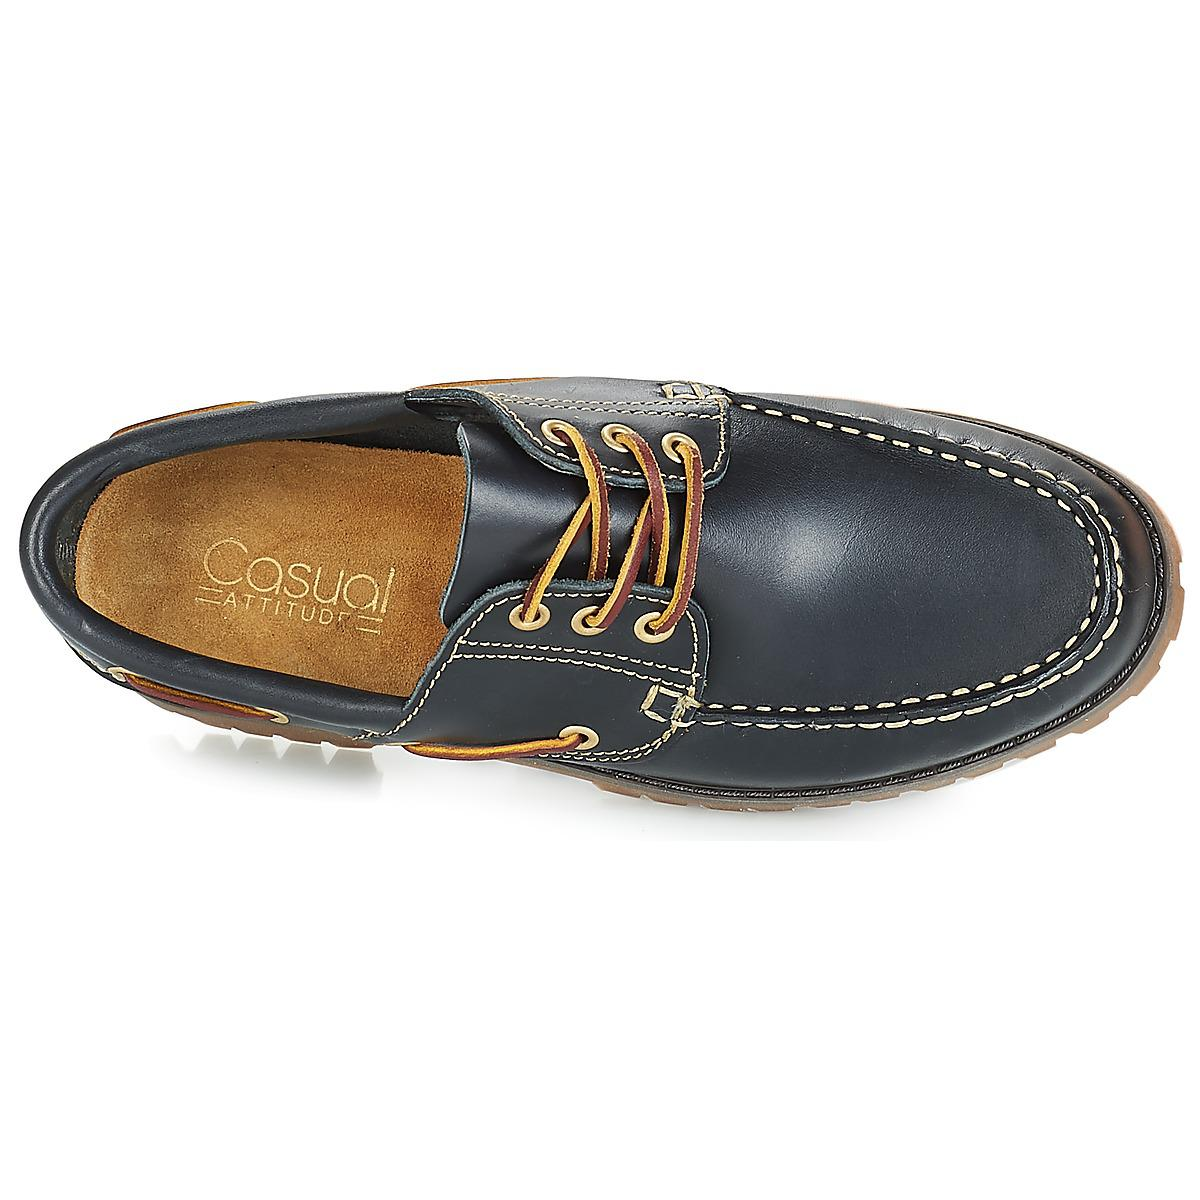 Casual Attitude Leather Everoa Boat Shoes in Blue for Men